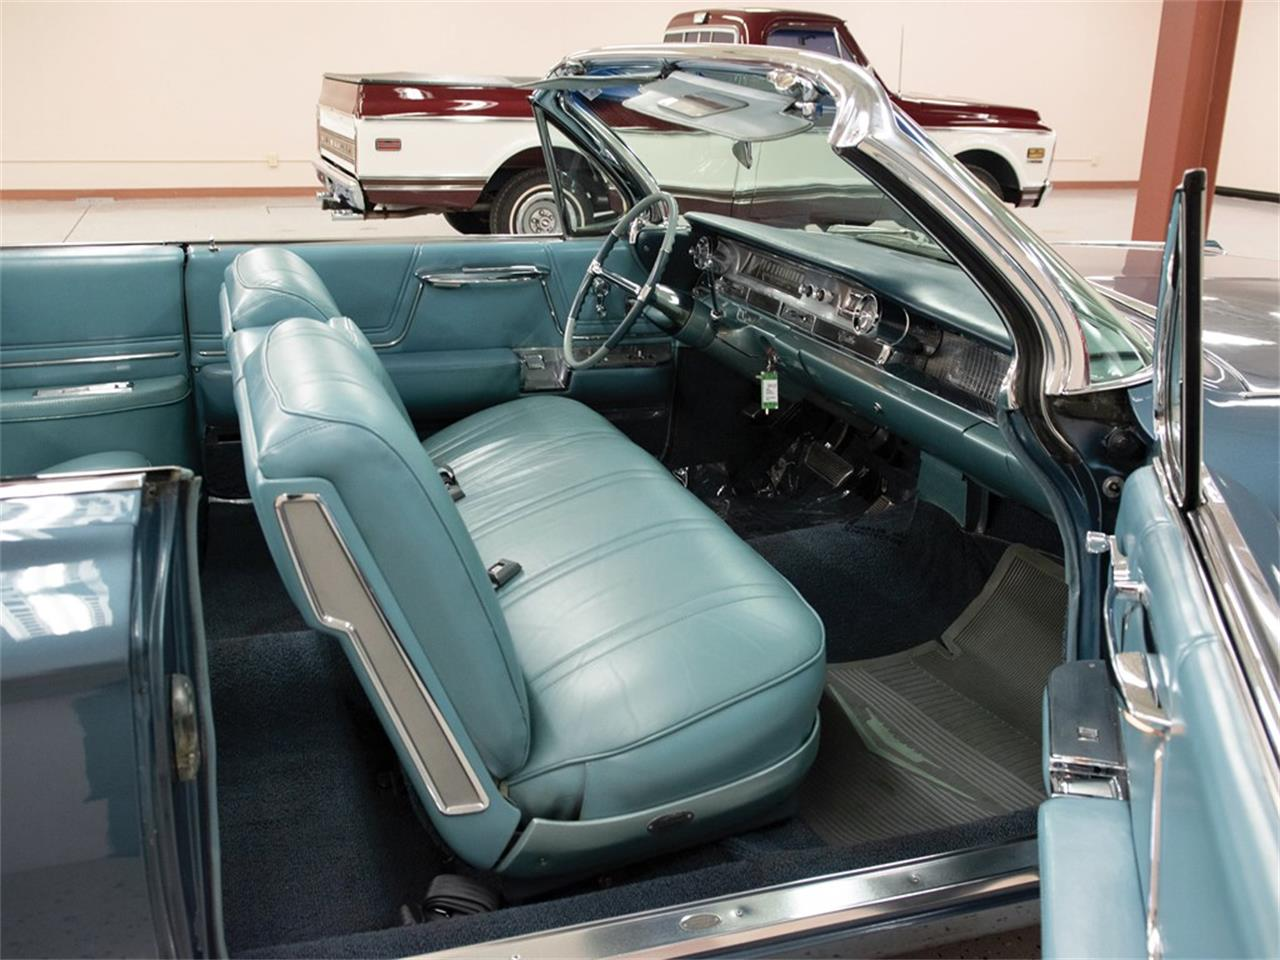 Large Picture of '62 Cadillac Series 62 located in Auburn Indiana Auction Vehicle - PY3O